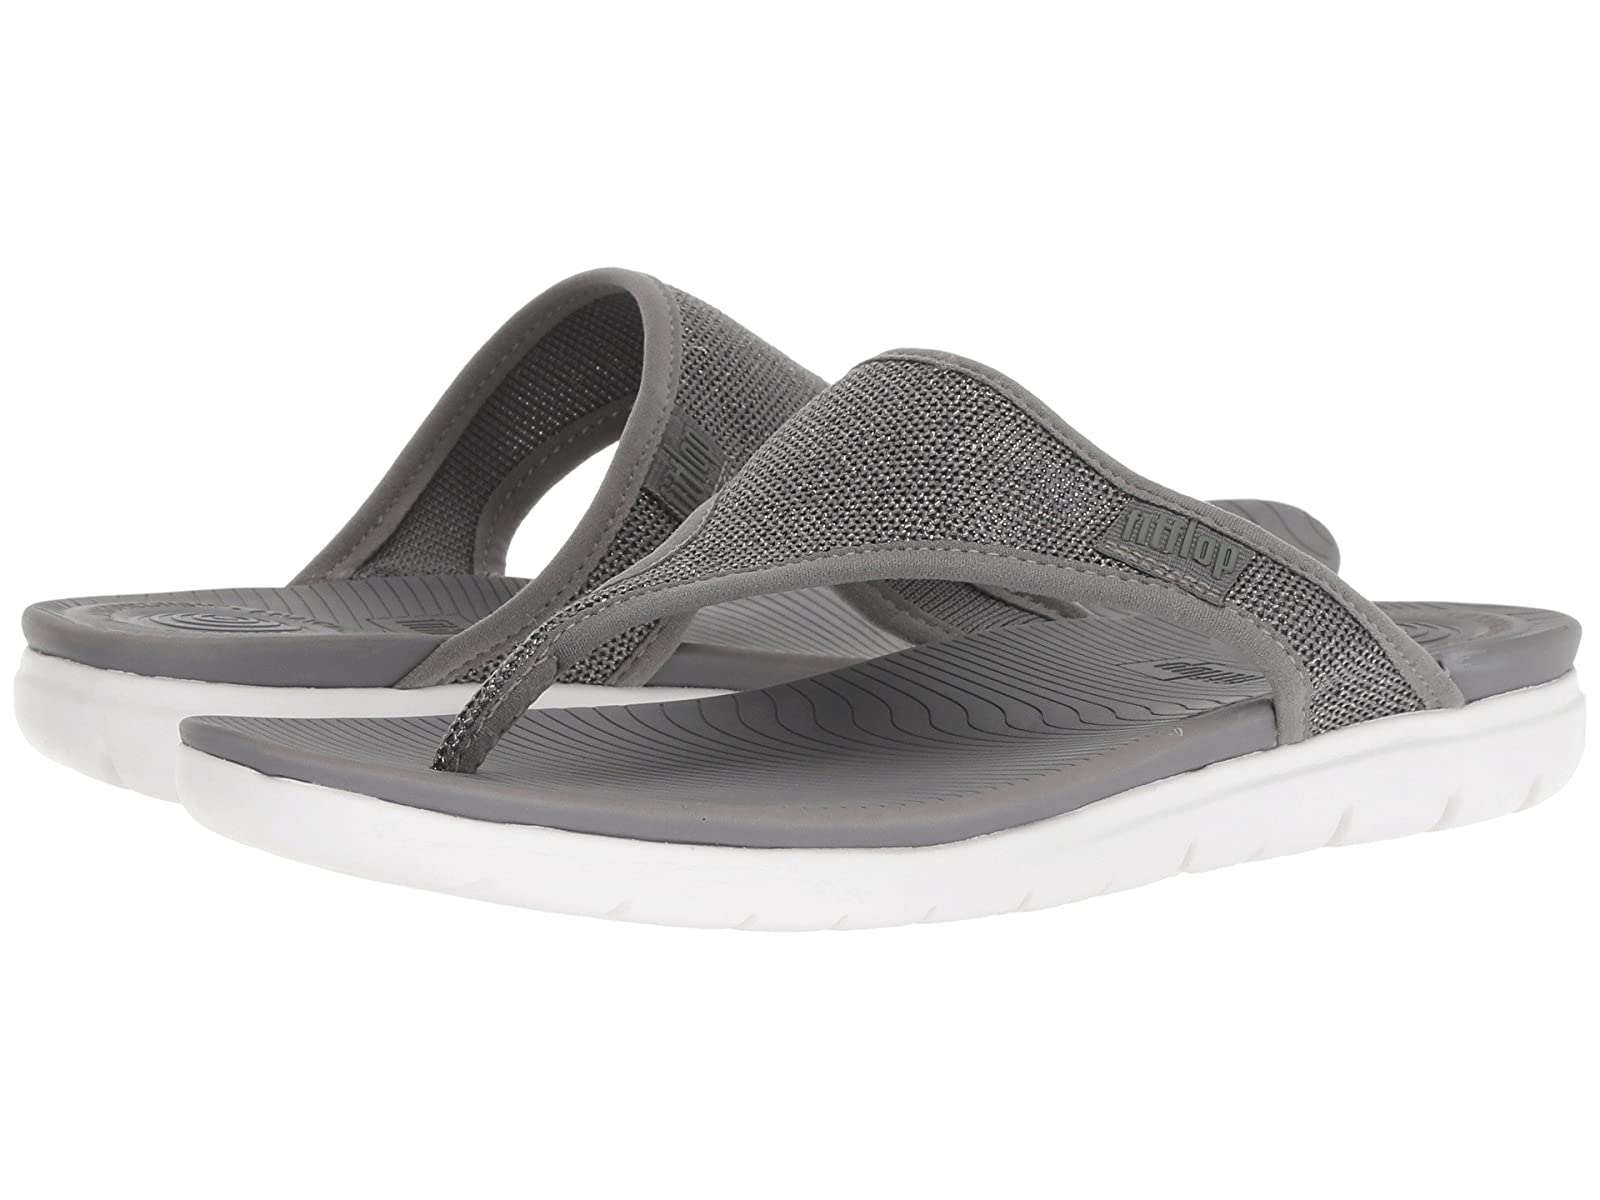 FitFlop Uberknit Toe Thong SandalsCheap and distinctive eye-catching shoes